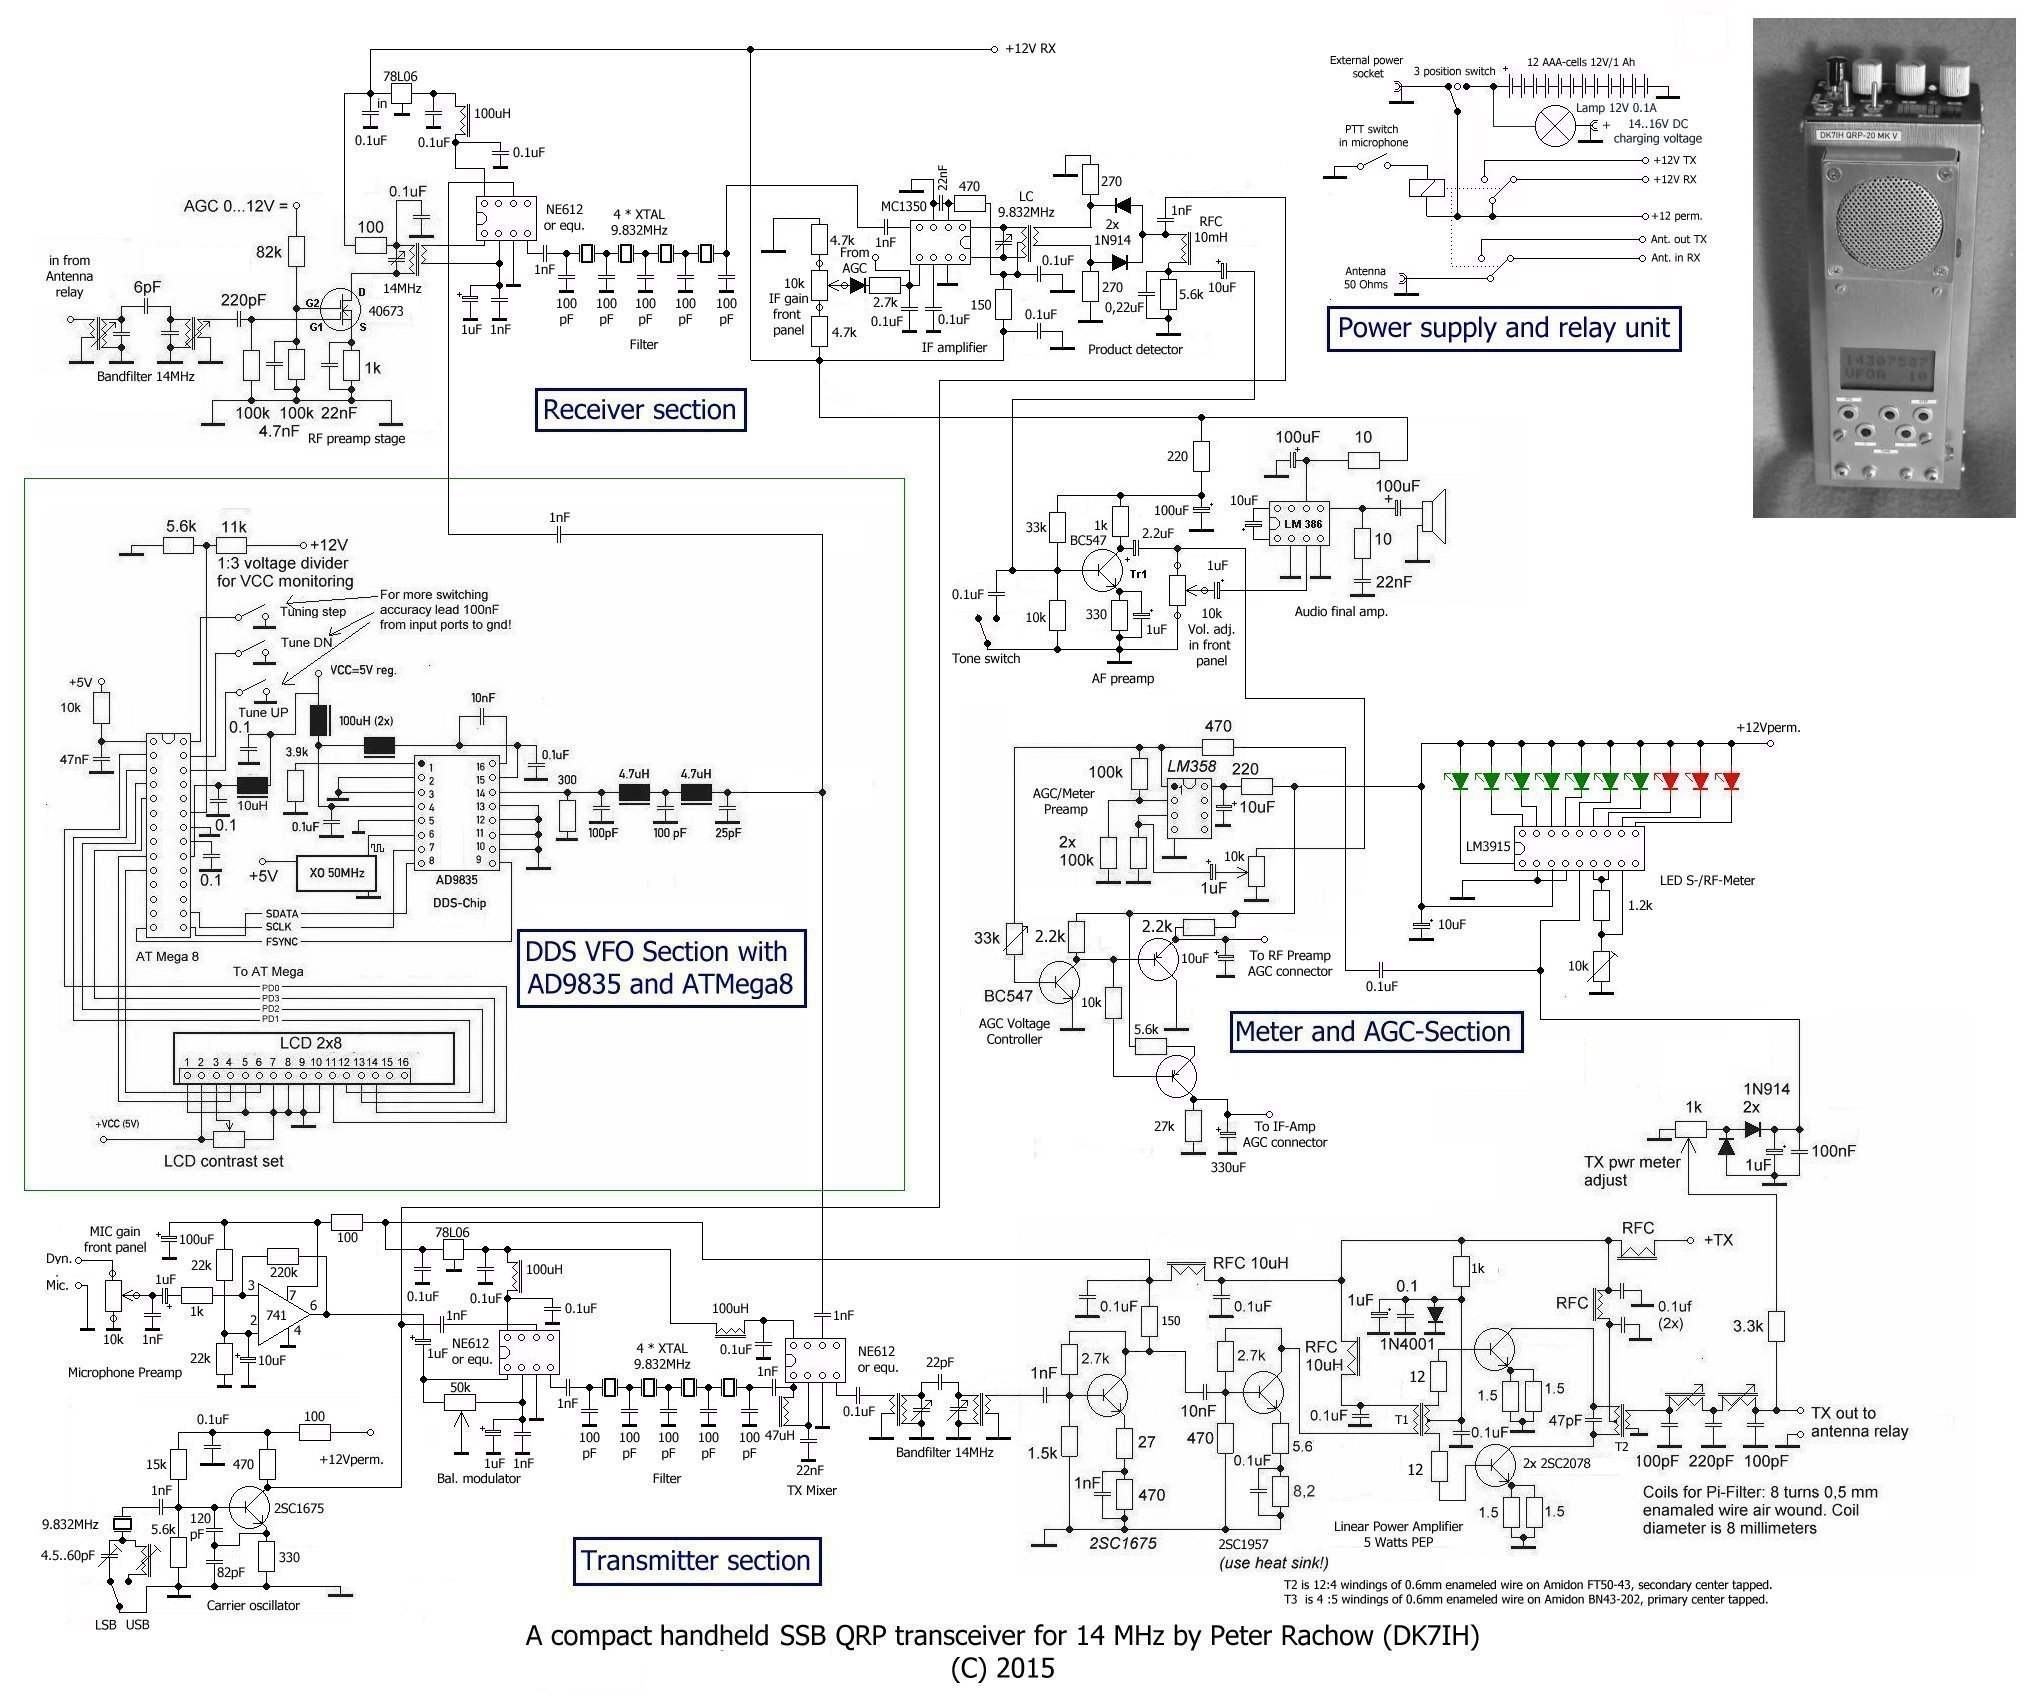 Revised schematic of QRP SSB handheld transceiver for 14 MHz/20Meter by DK7IH (Peter Rachow)